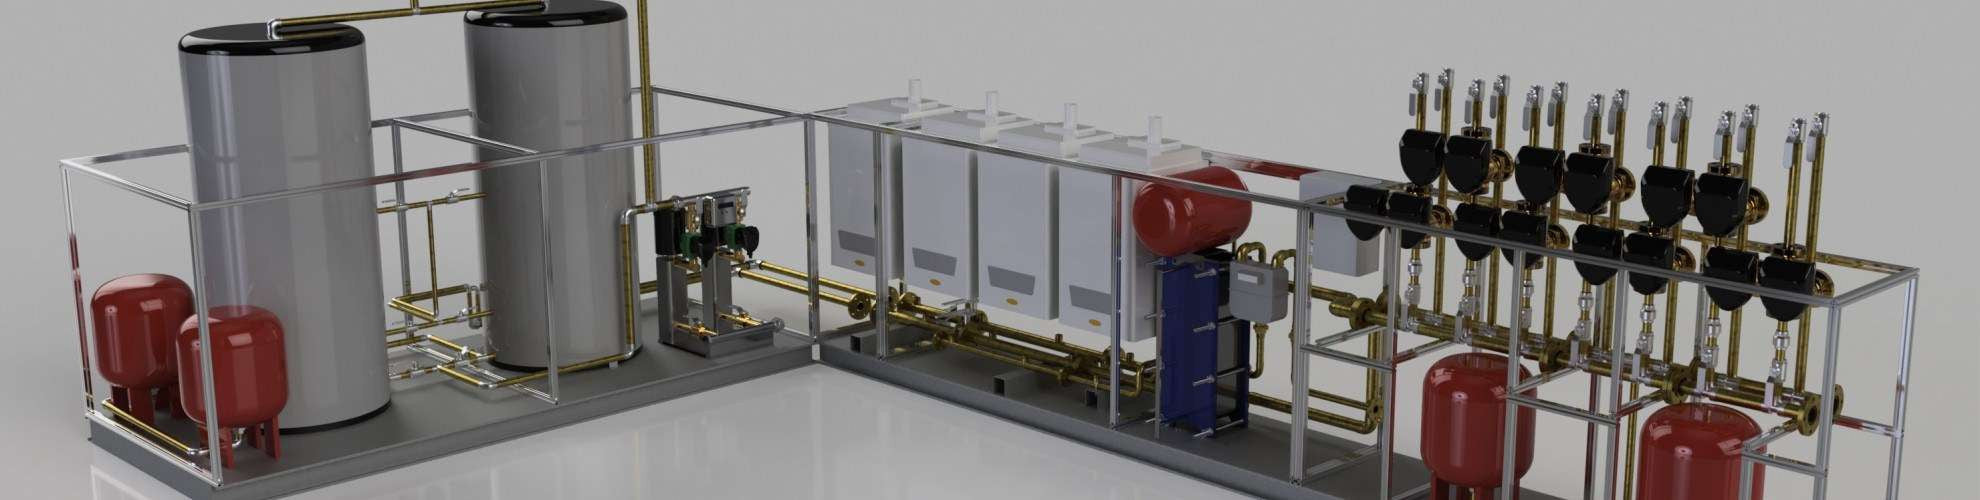 Commercial Boiler House Products